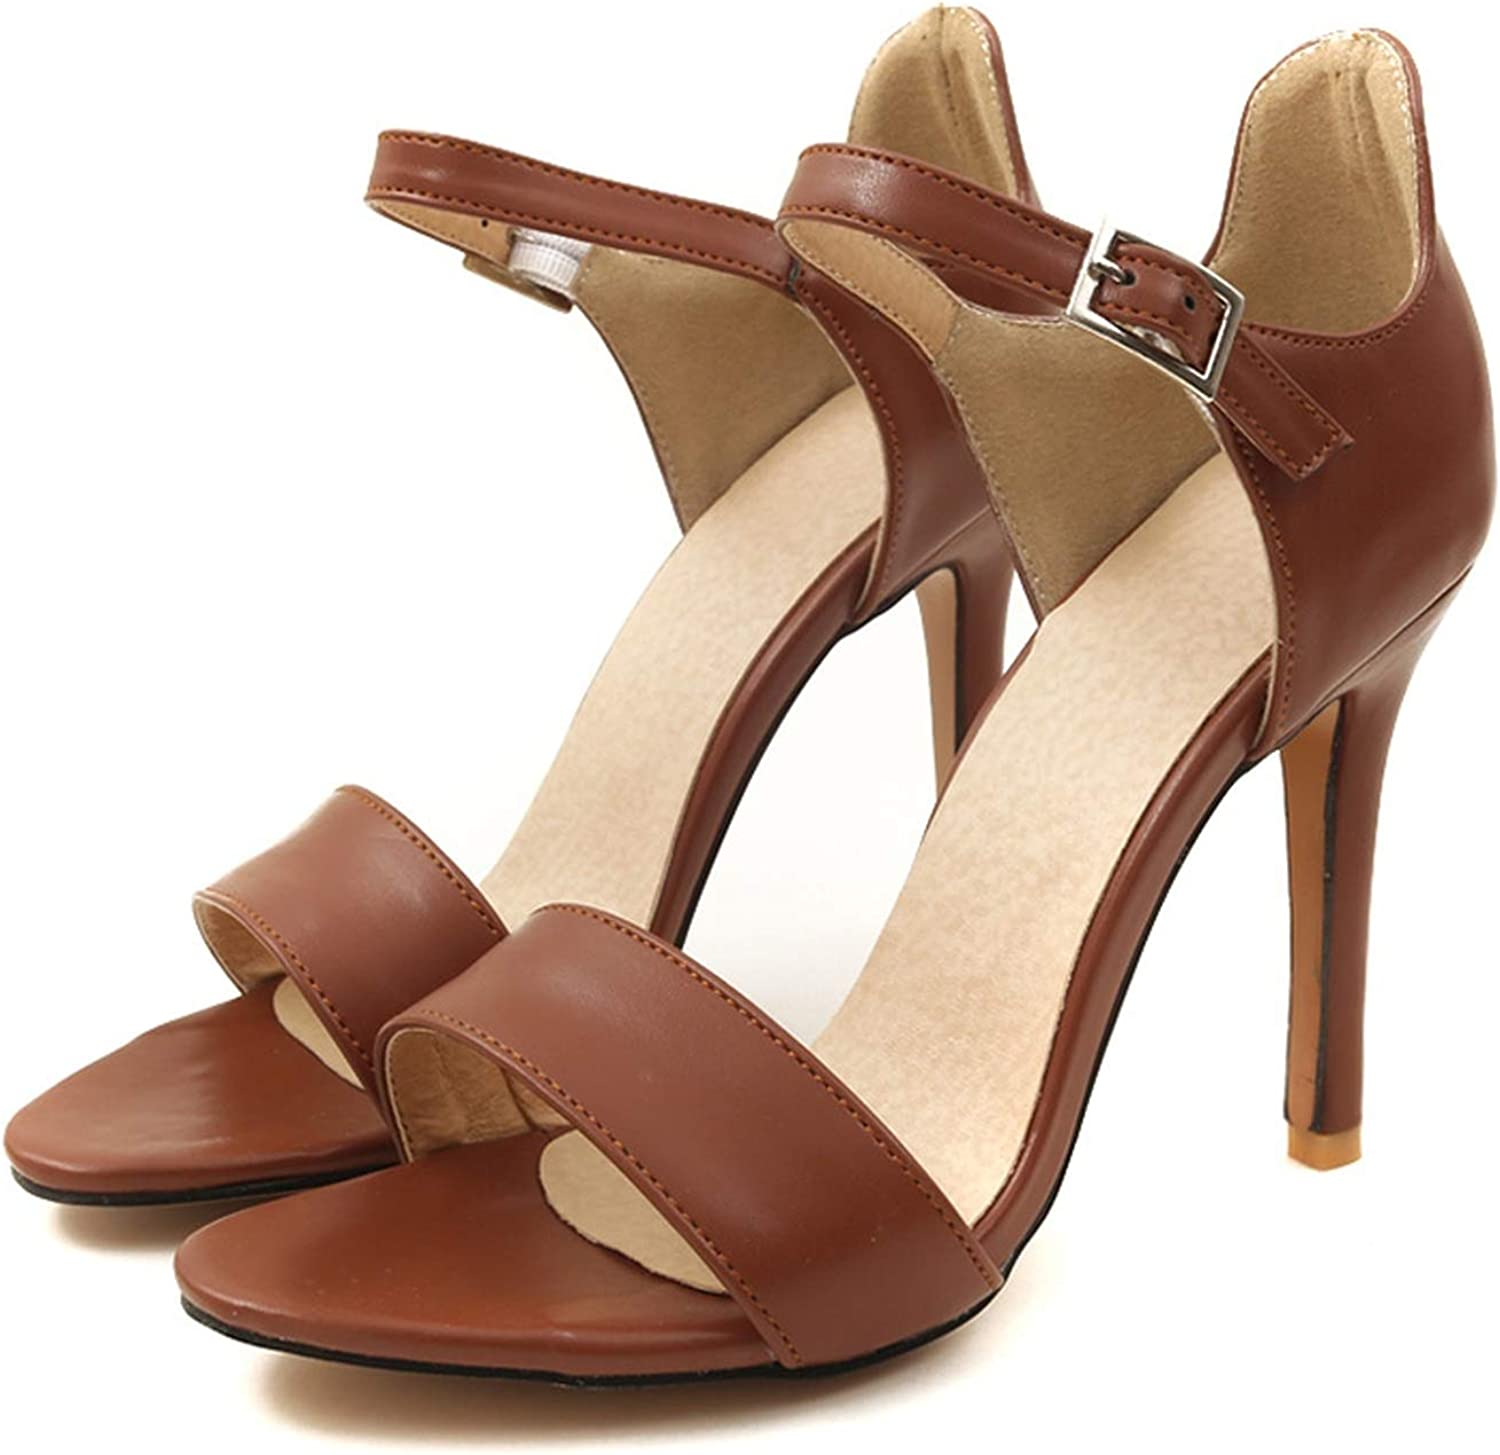 Merry-Heart Womens Sexy Thin High Heels Sandals Buckle Strap Summer shoes Ladies,